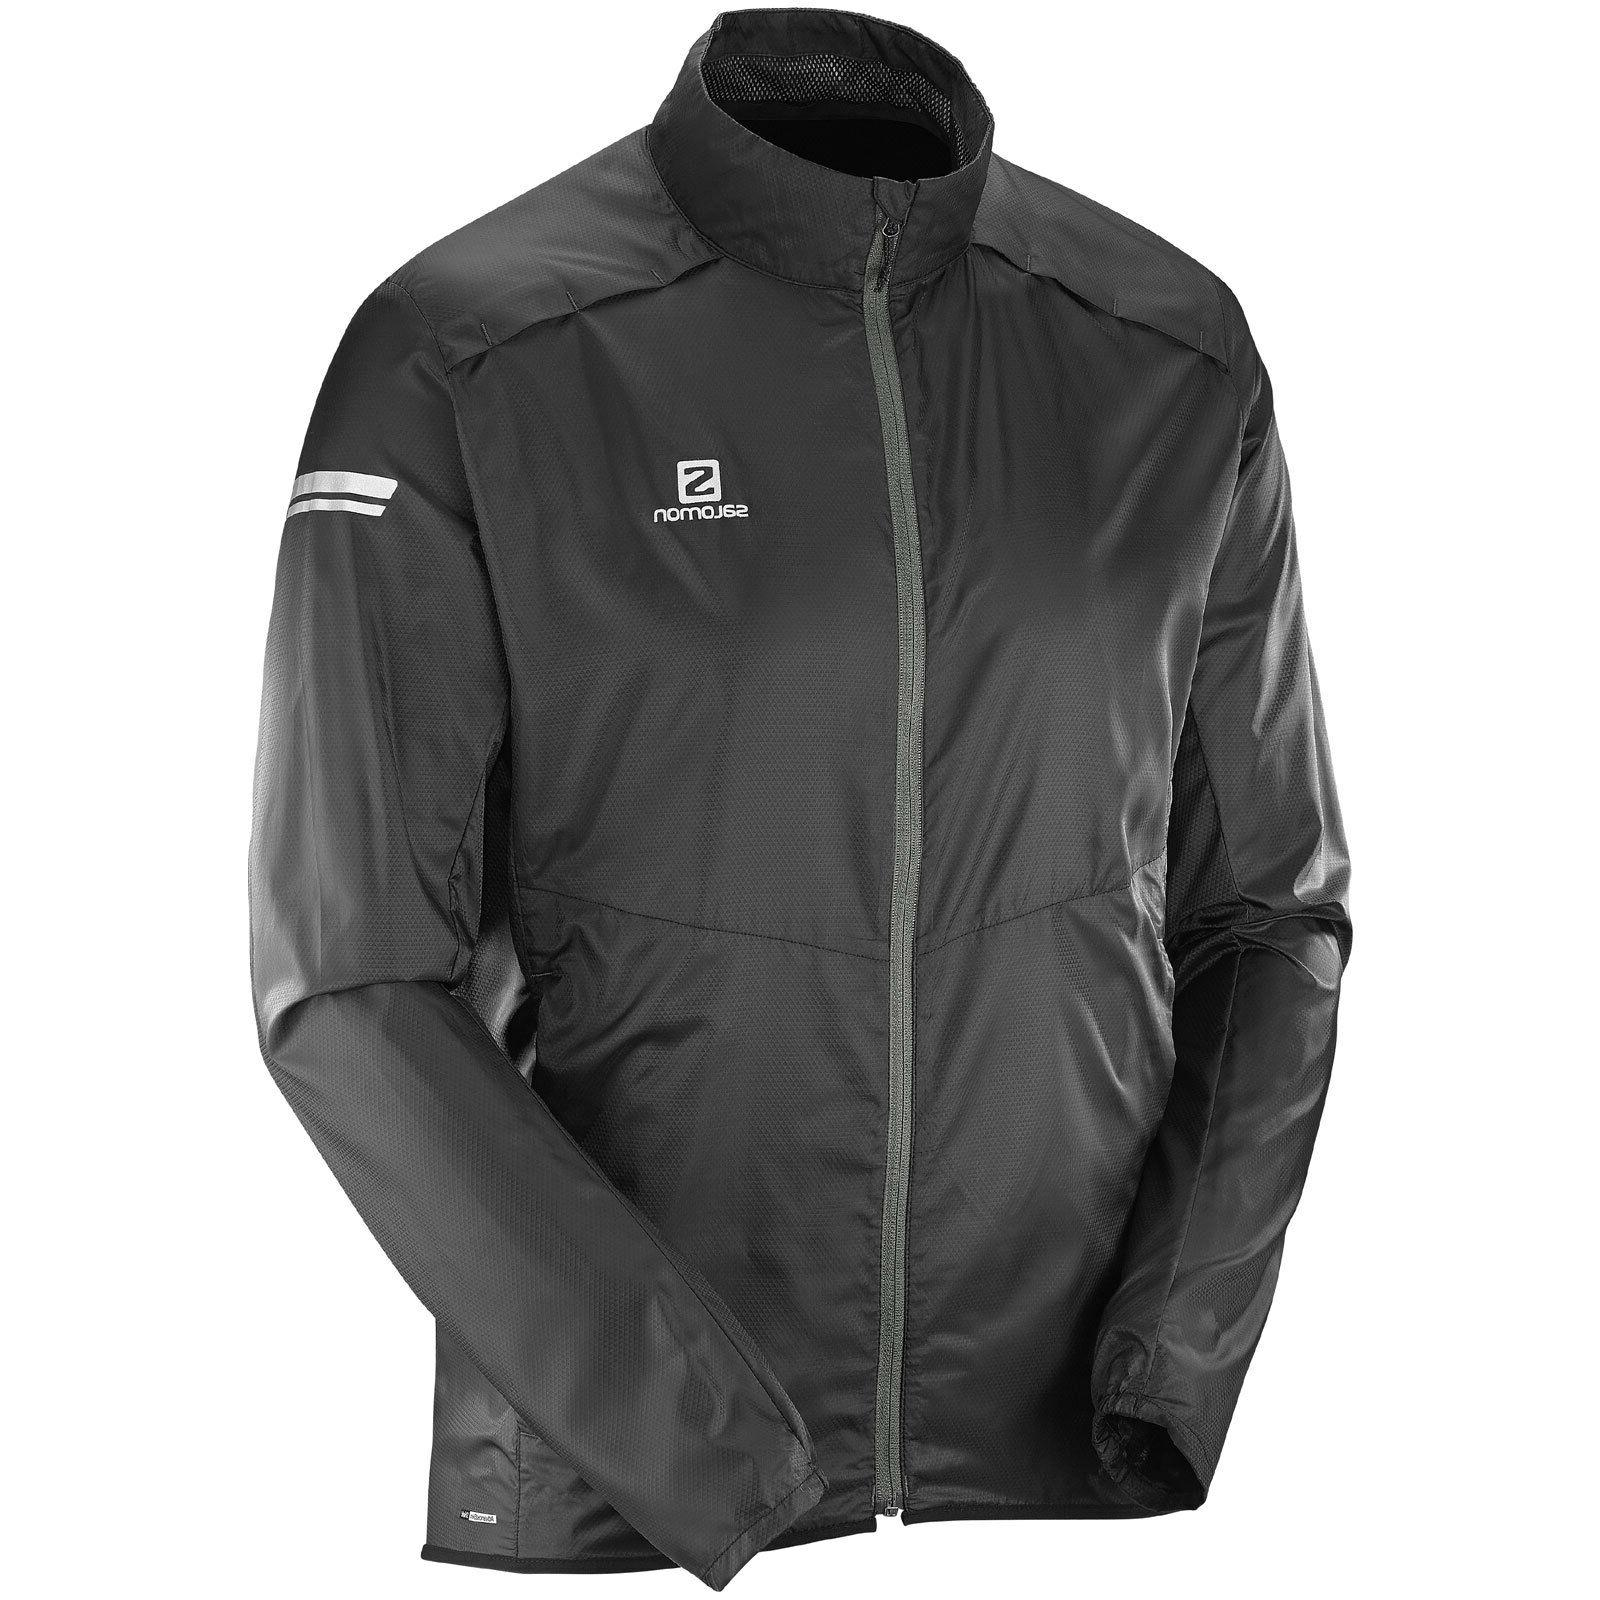 Salomon Agile Wind Jacket Men's Windbreaker Outdoor Running